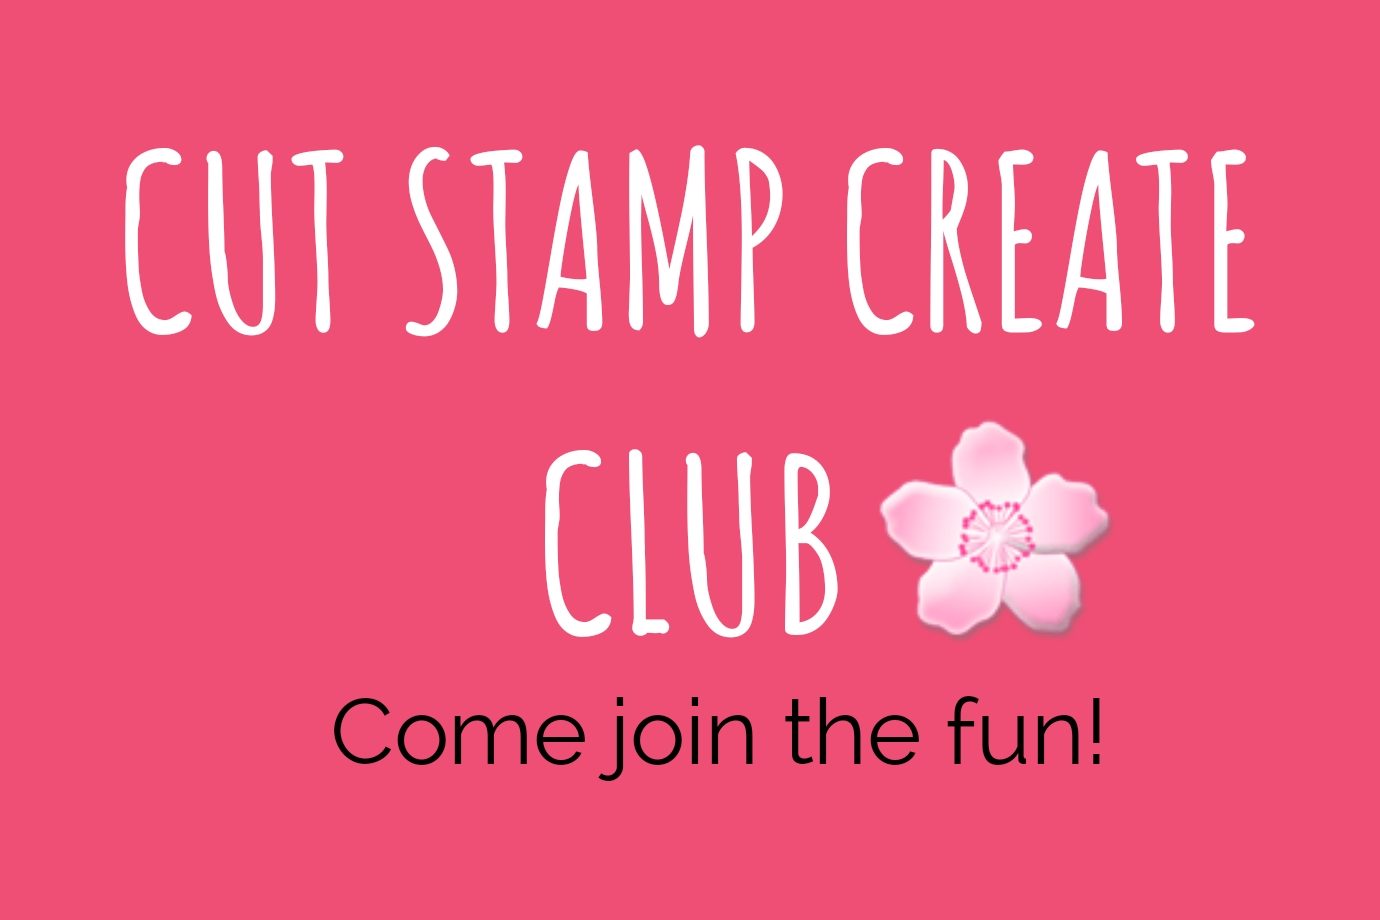 CUT STAMP CREATE CLUB